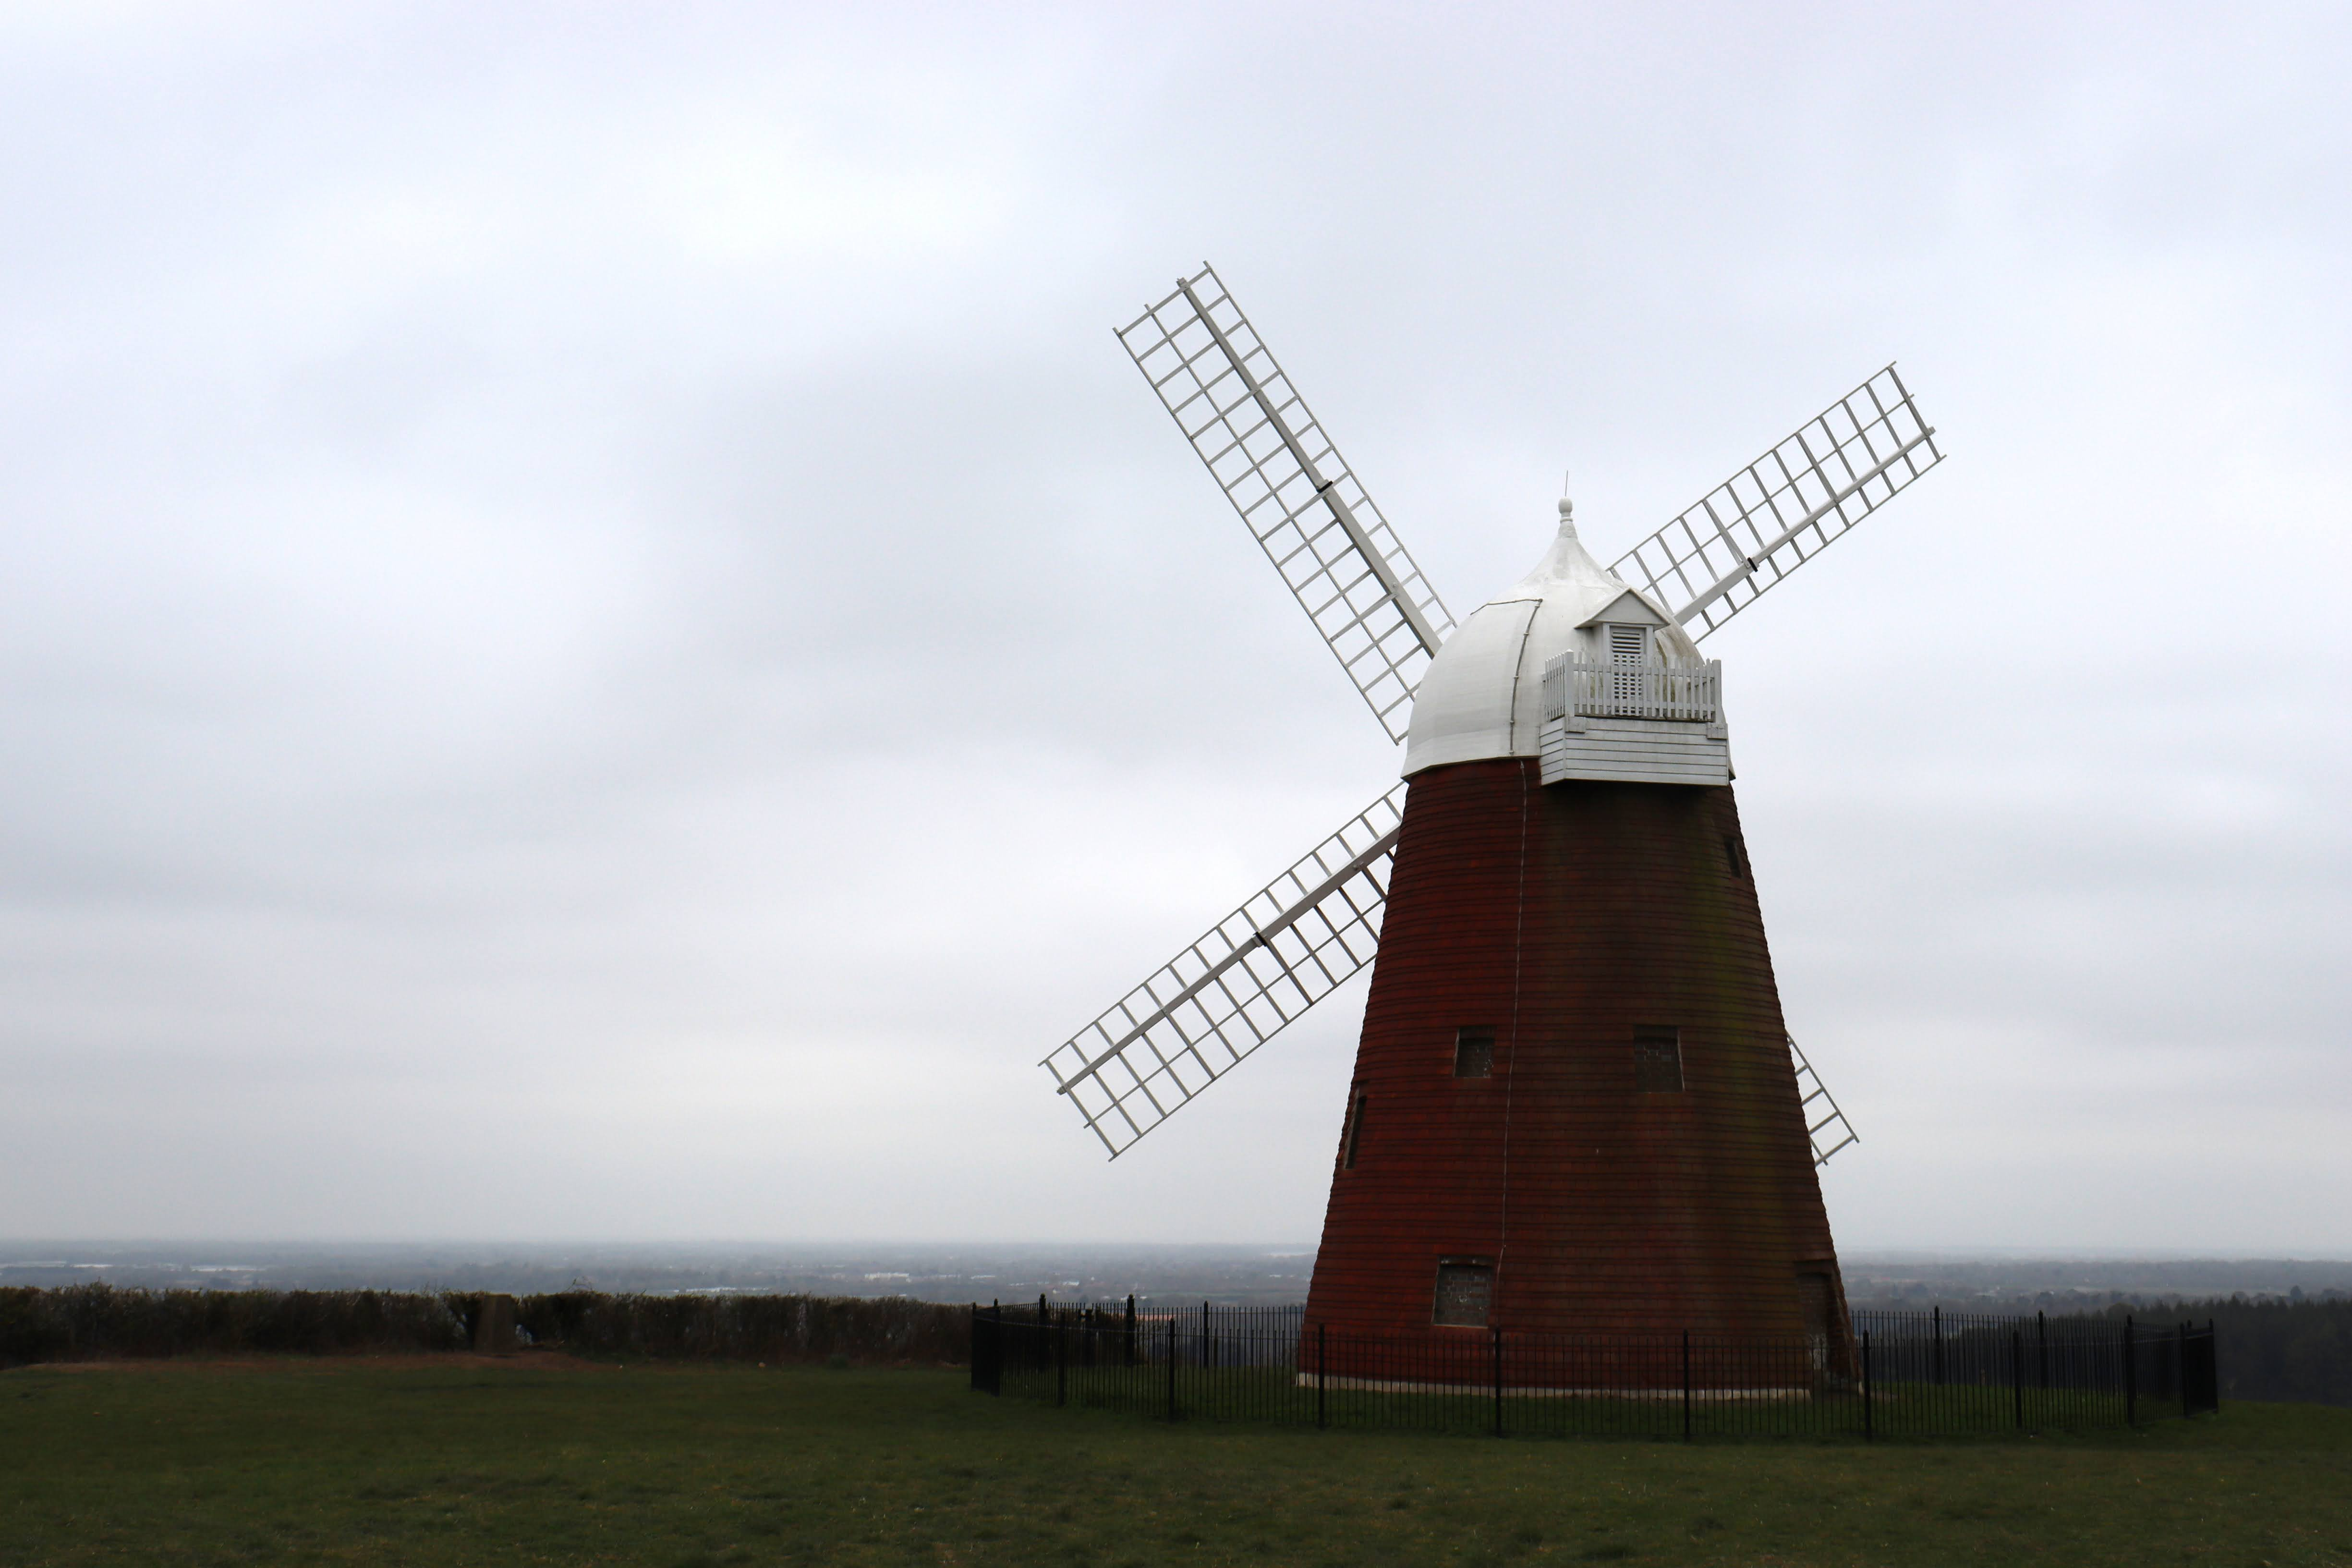 The red and white Halnaker Mill from the back. Surrounded by green grass and hills in the background.